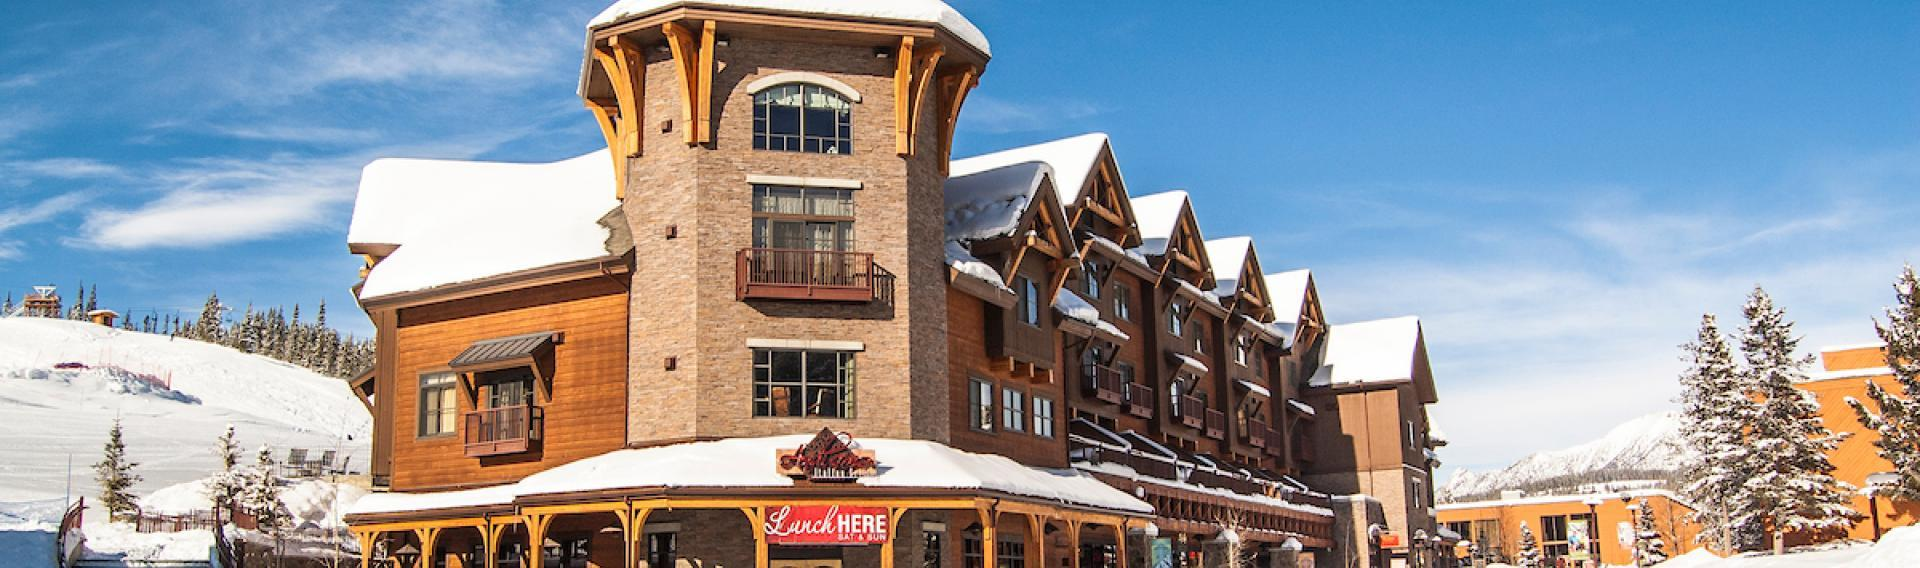 Big Sky Mountain Resort in Big Sky, Montana for CME, CLE, and CE